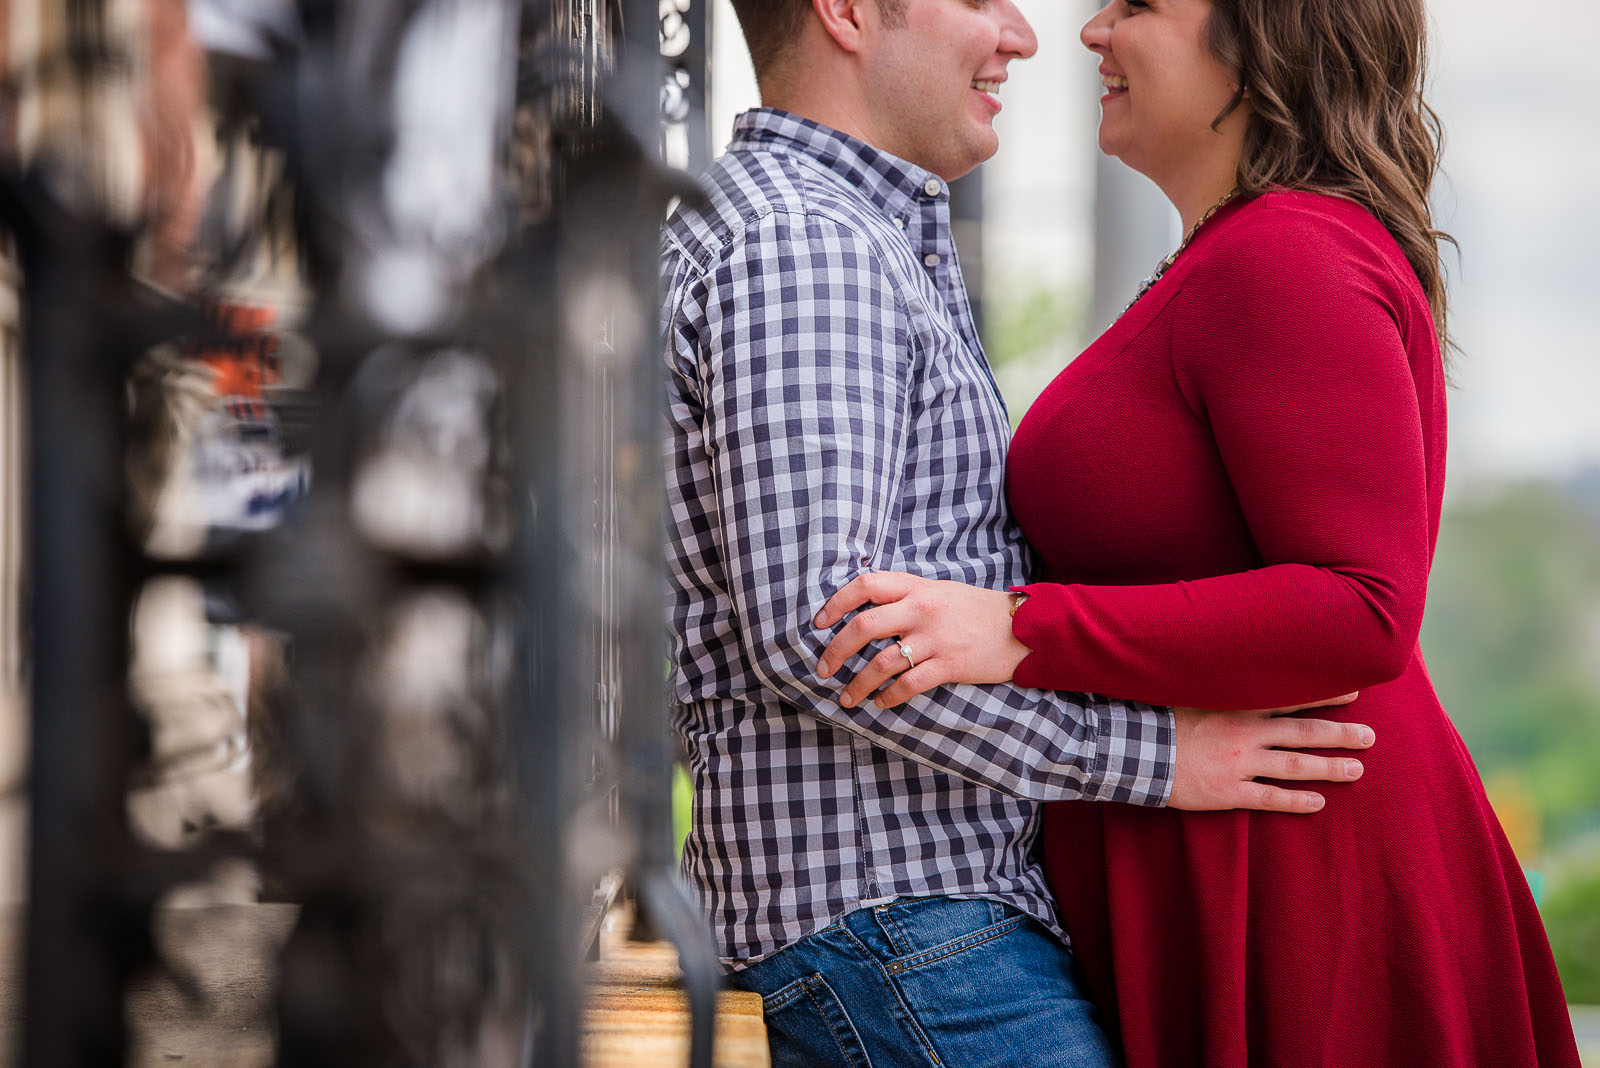 Eric_and_Christy_Photography_Blog_Stacey_Geoff_Engagement-15